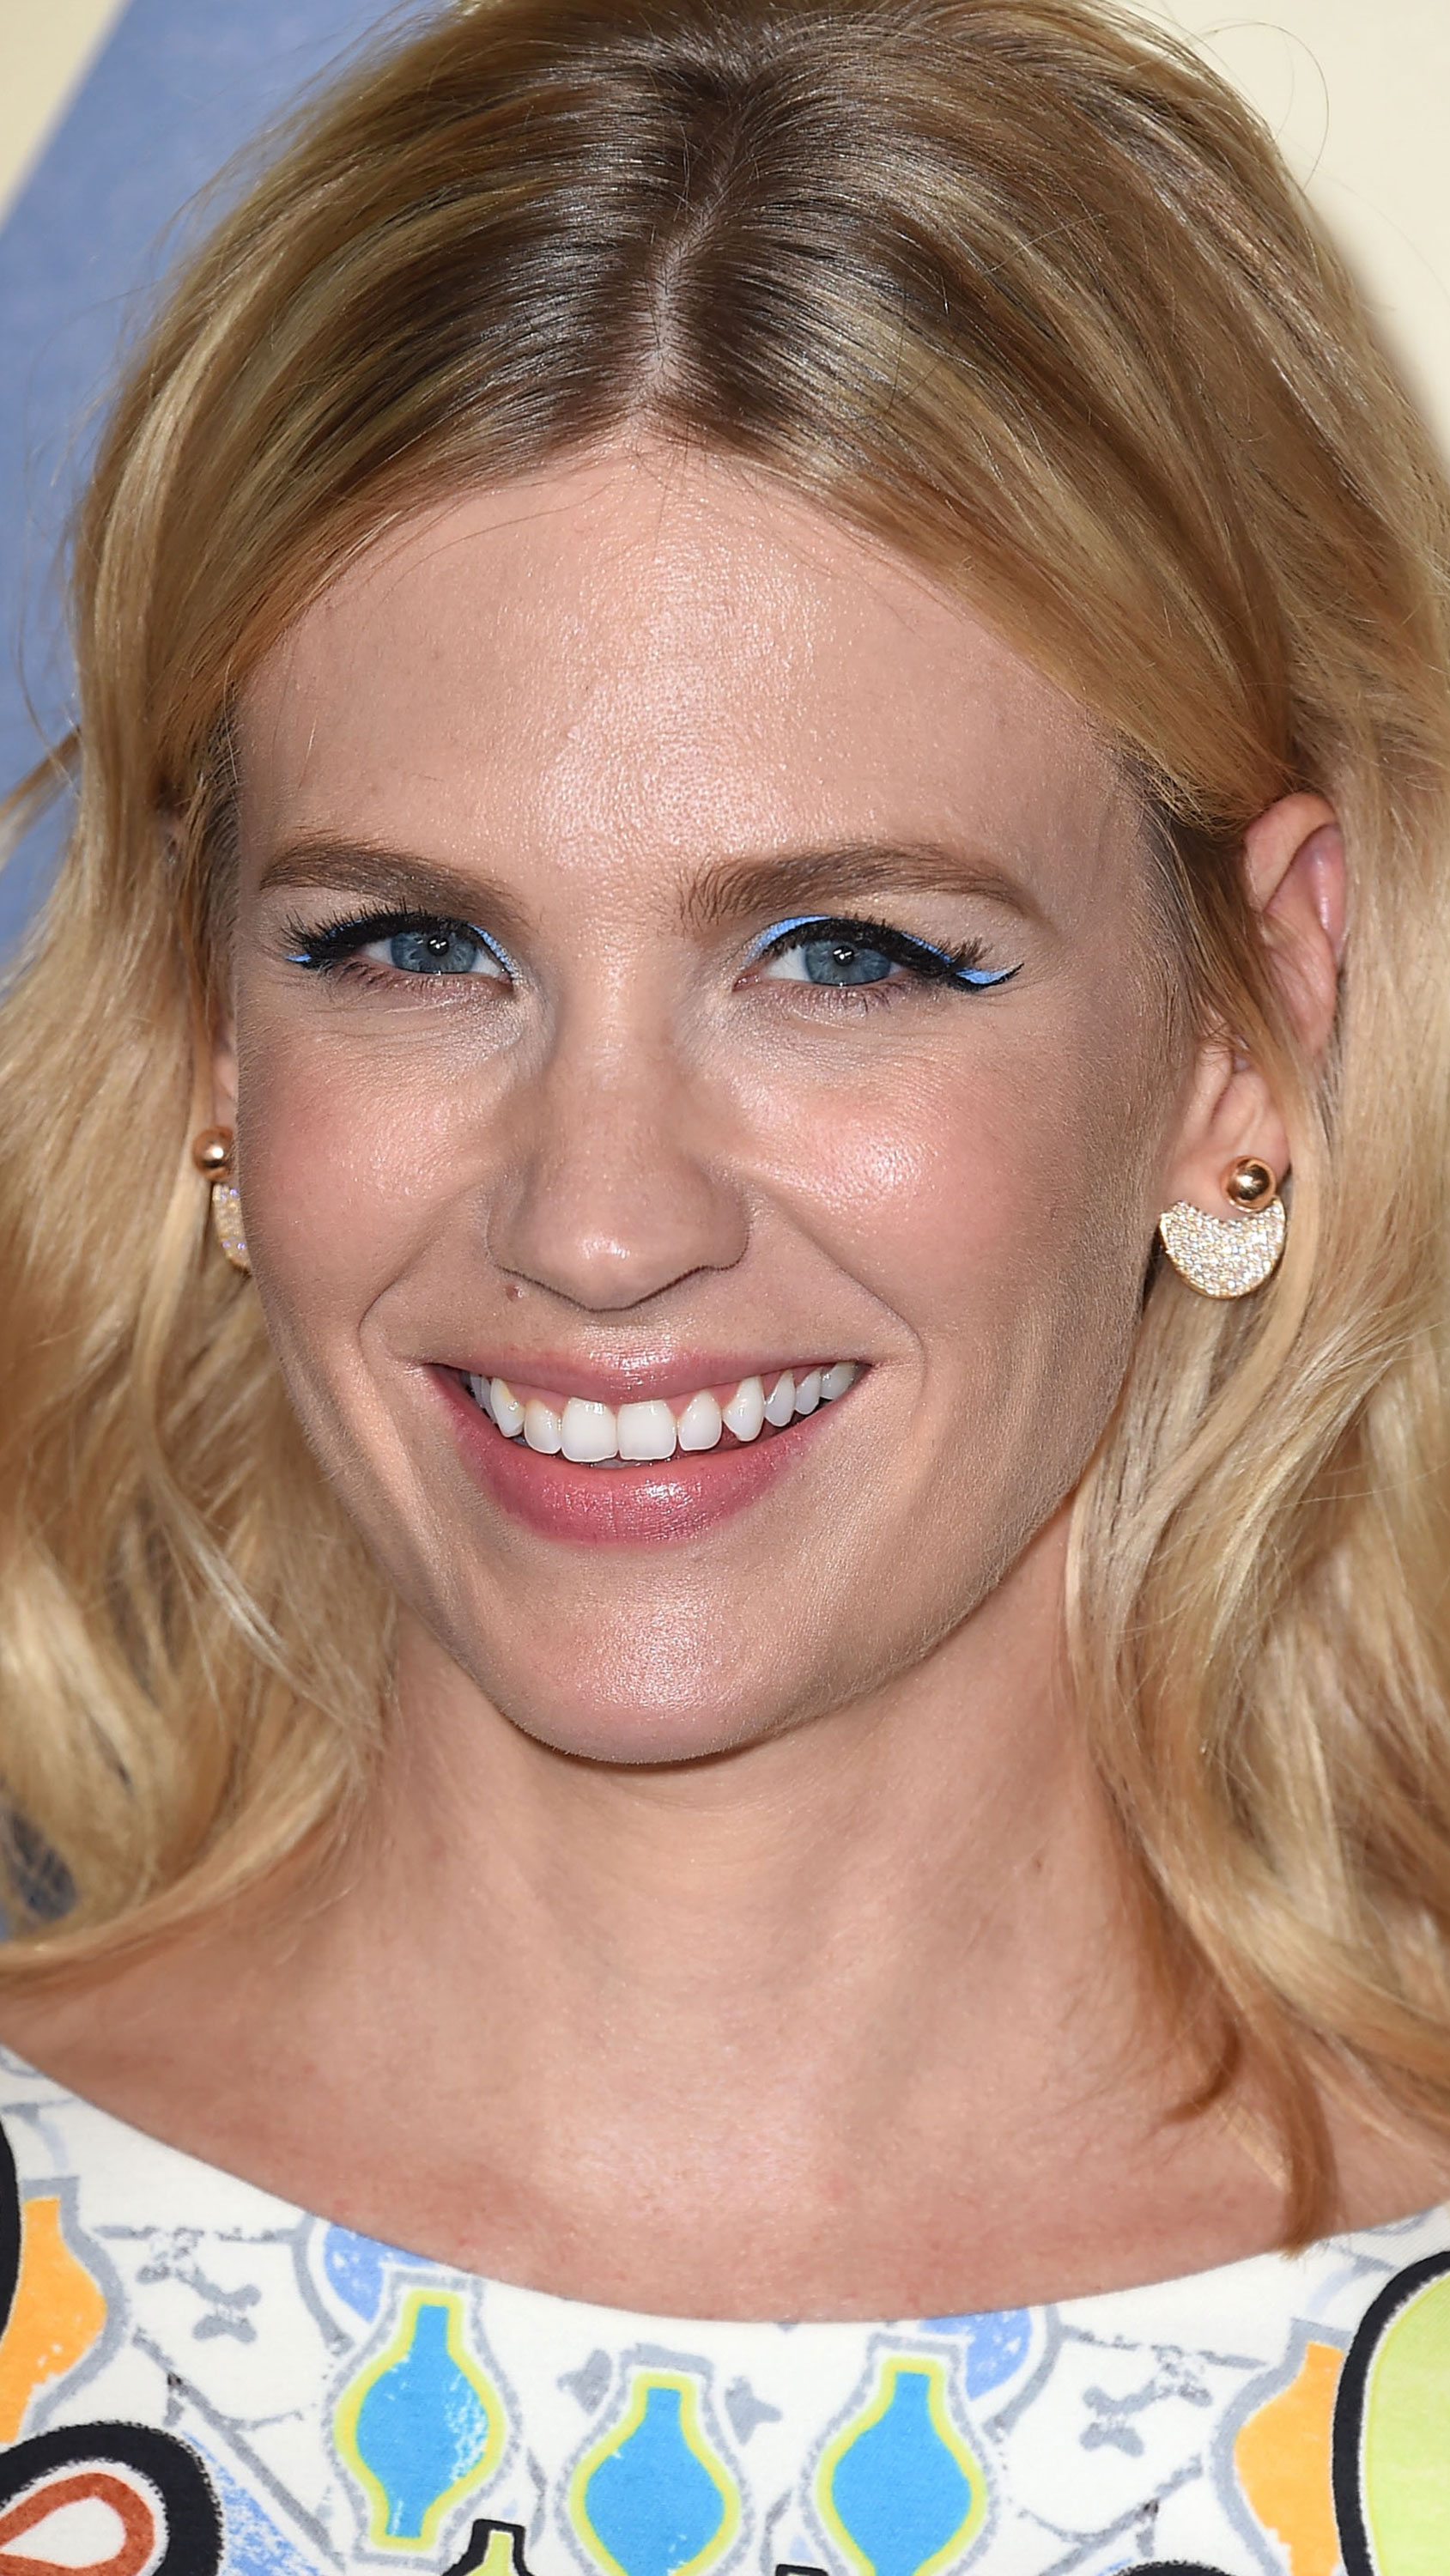 <p>One key look from the Fall 2015 runways was colourful lids - a trend that's as tricky as it is beautiful. For all those who want to play along at home, we've found your muse: actress January Jones, who worked the trend with wearable glee over the weekend. Instead of creating a standard black winged eye, she also lined the flick an electric blue. The result will have you reaching for some colour, so we've rounded up 19 far-from-boring shades to help you in your search.</p>